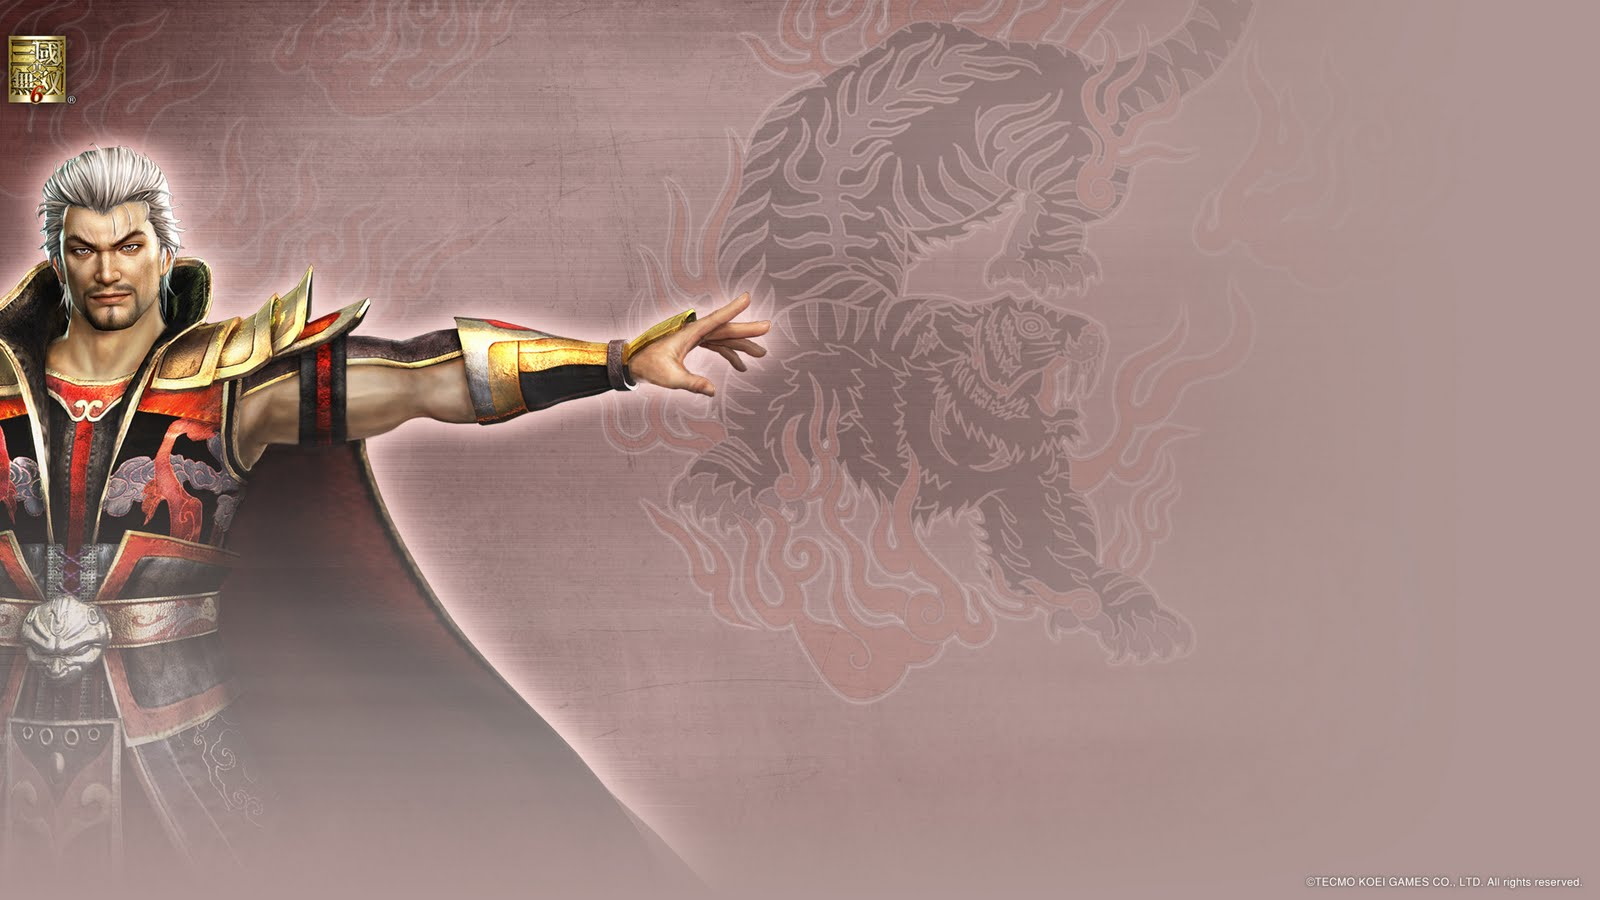 Dynasty warriors HD & Widescreen Wallpaper 0.680983979836106